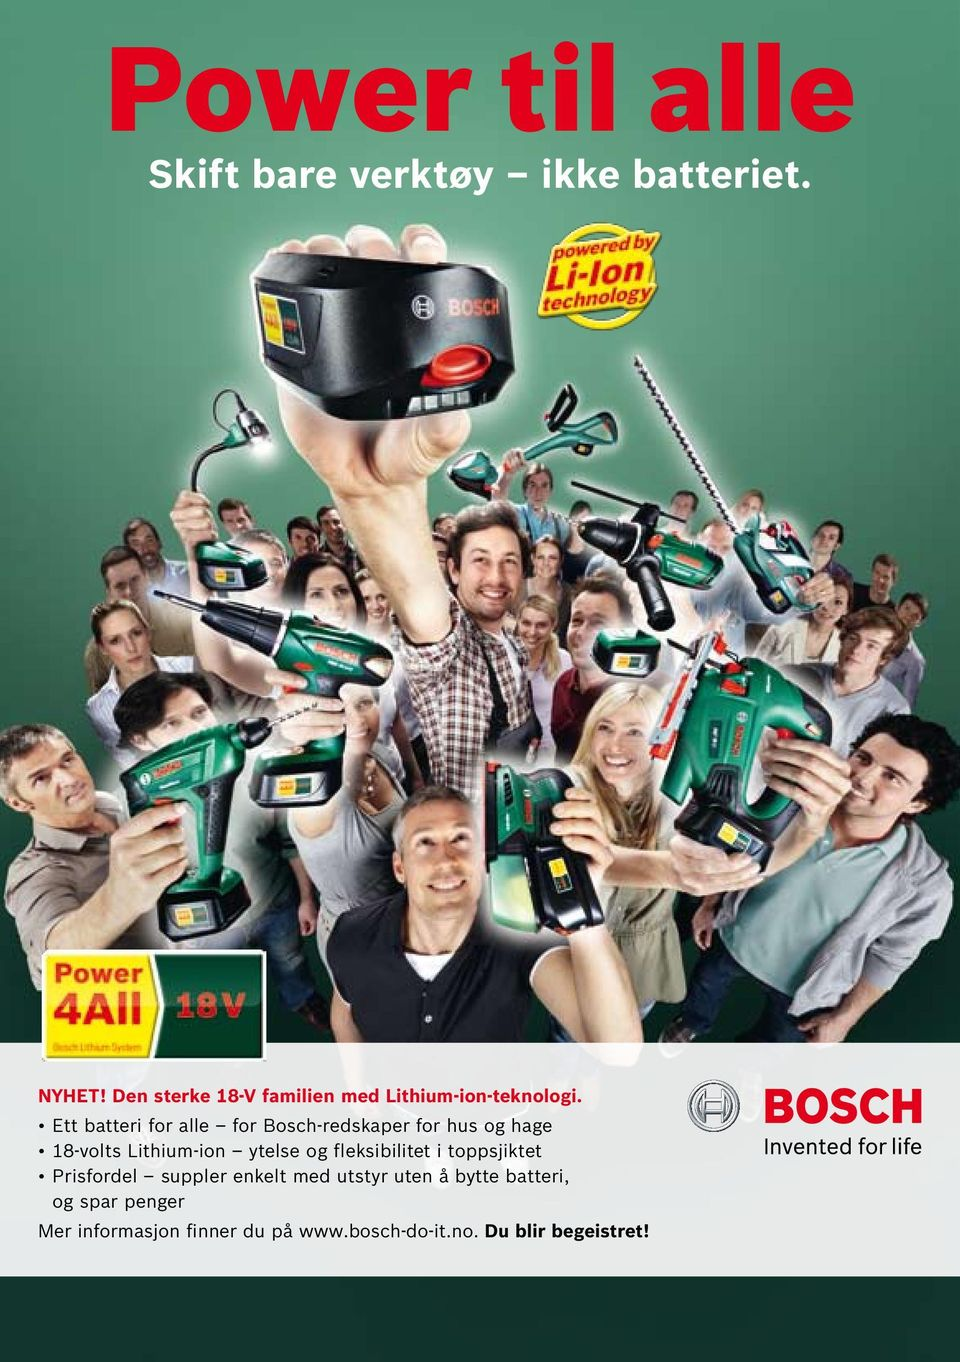 Ett batteri for alle for Bosch-redskaper for hus og hage 18-volts Lithium-ion ytelse og